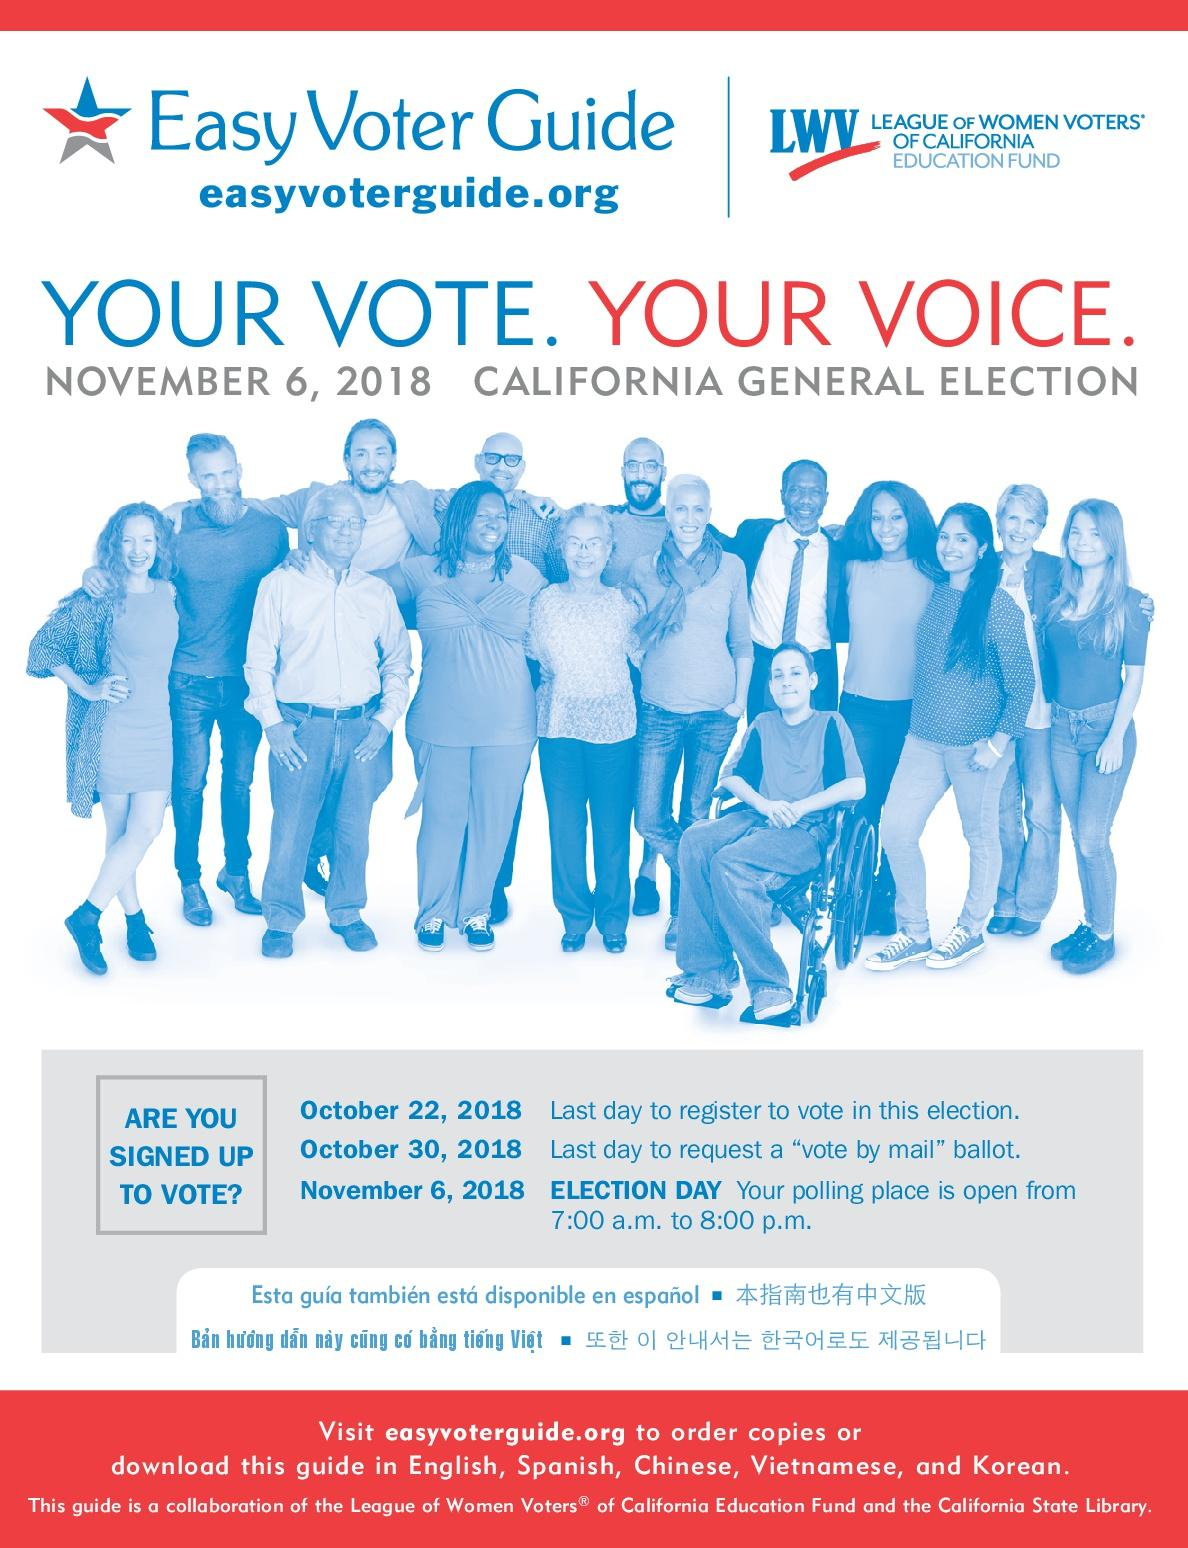 Cover photo of Easy Voter Guide